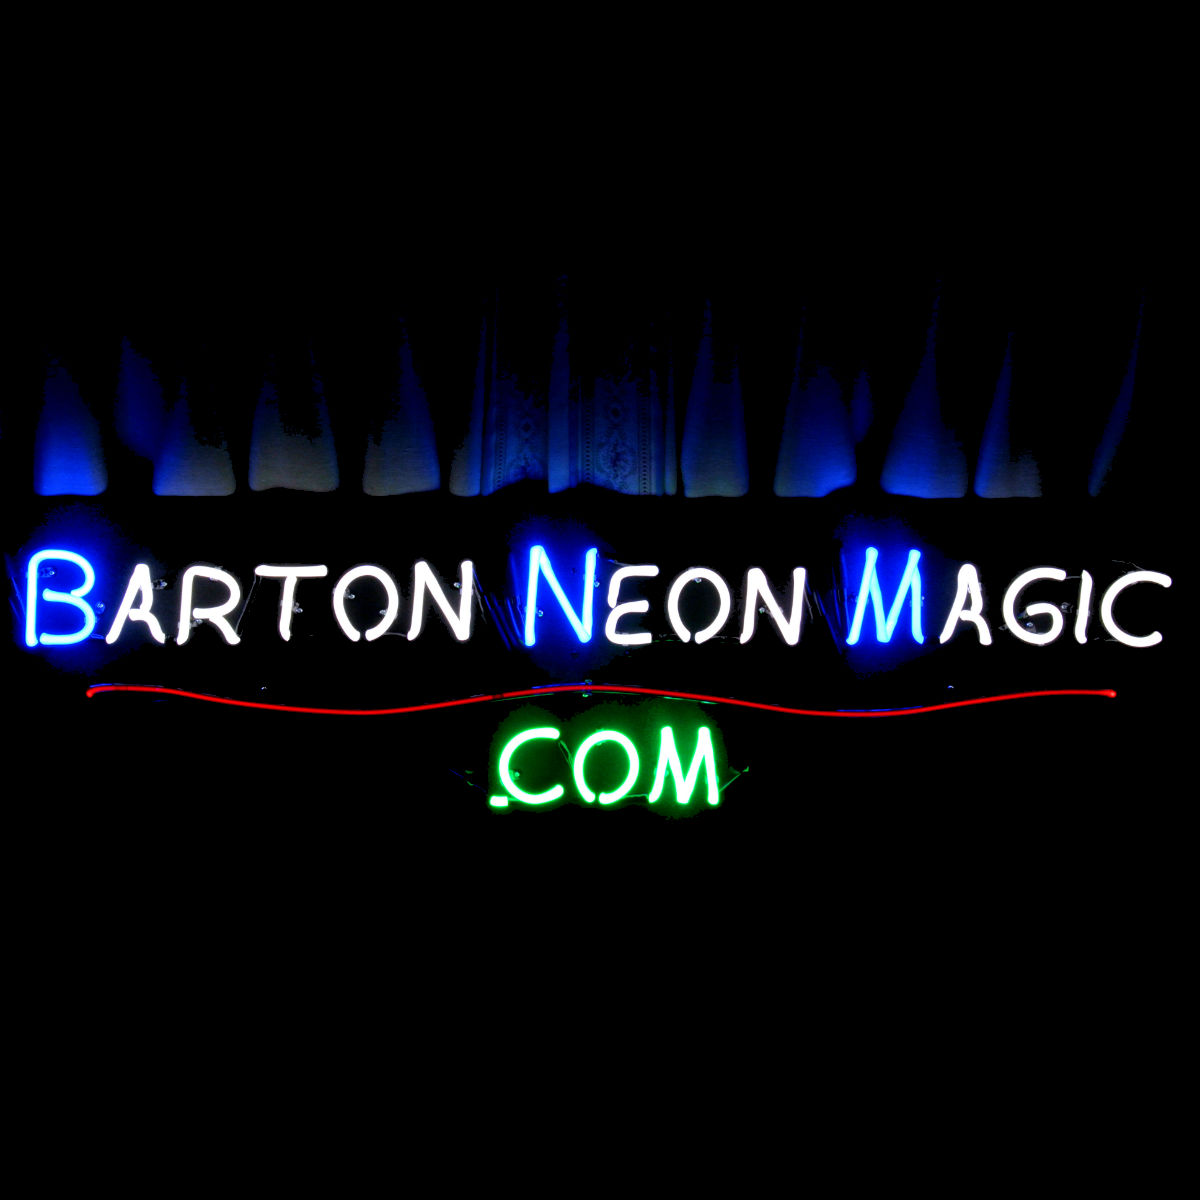 NEON ART, NEON SCULPTURES, DESIGNER HAND-BLOWN NEON LIGHTING by John Barton - BartonNeonMagic.com